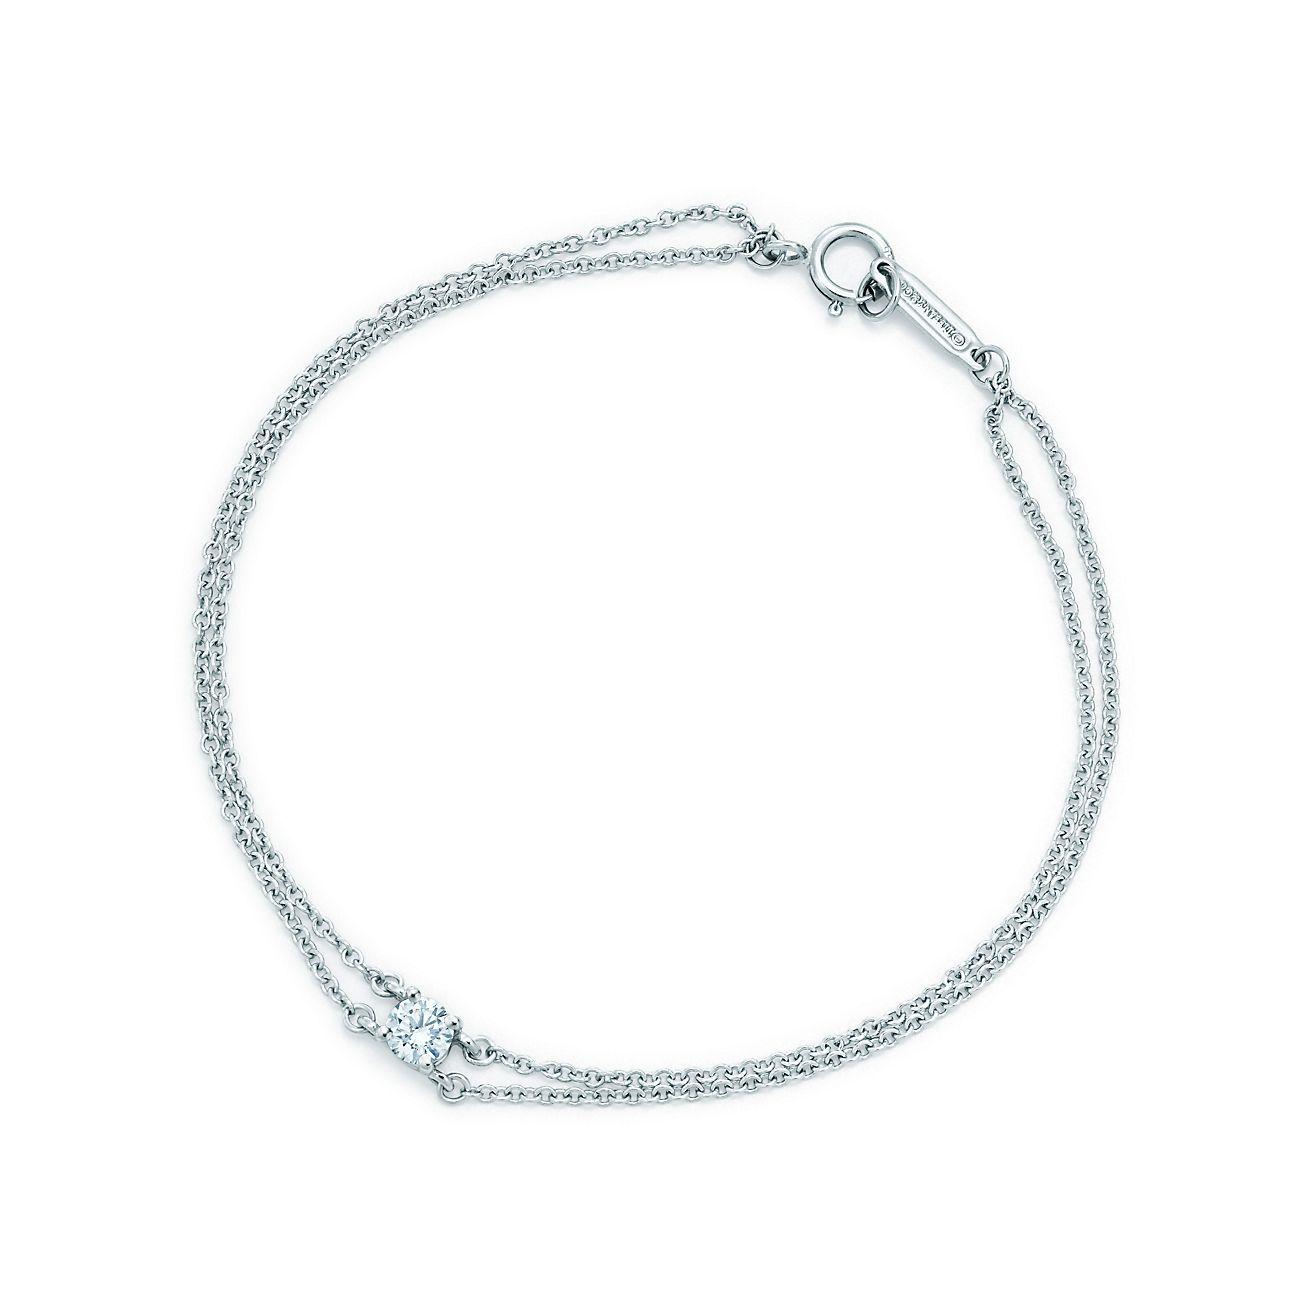 Tiffany Hearts bracelet in platinum with diamonds - Size 6.25 IN Tiffany & Co.